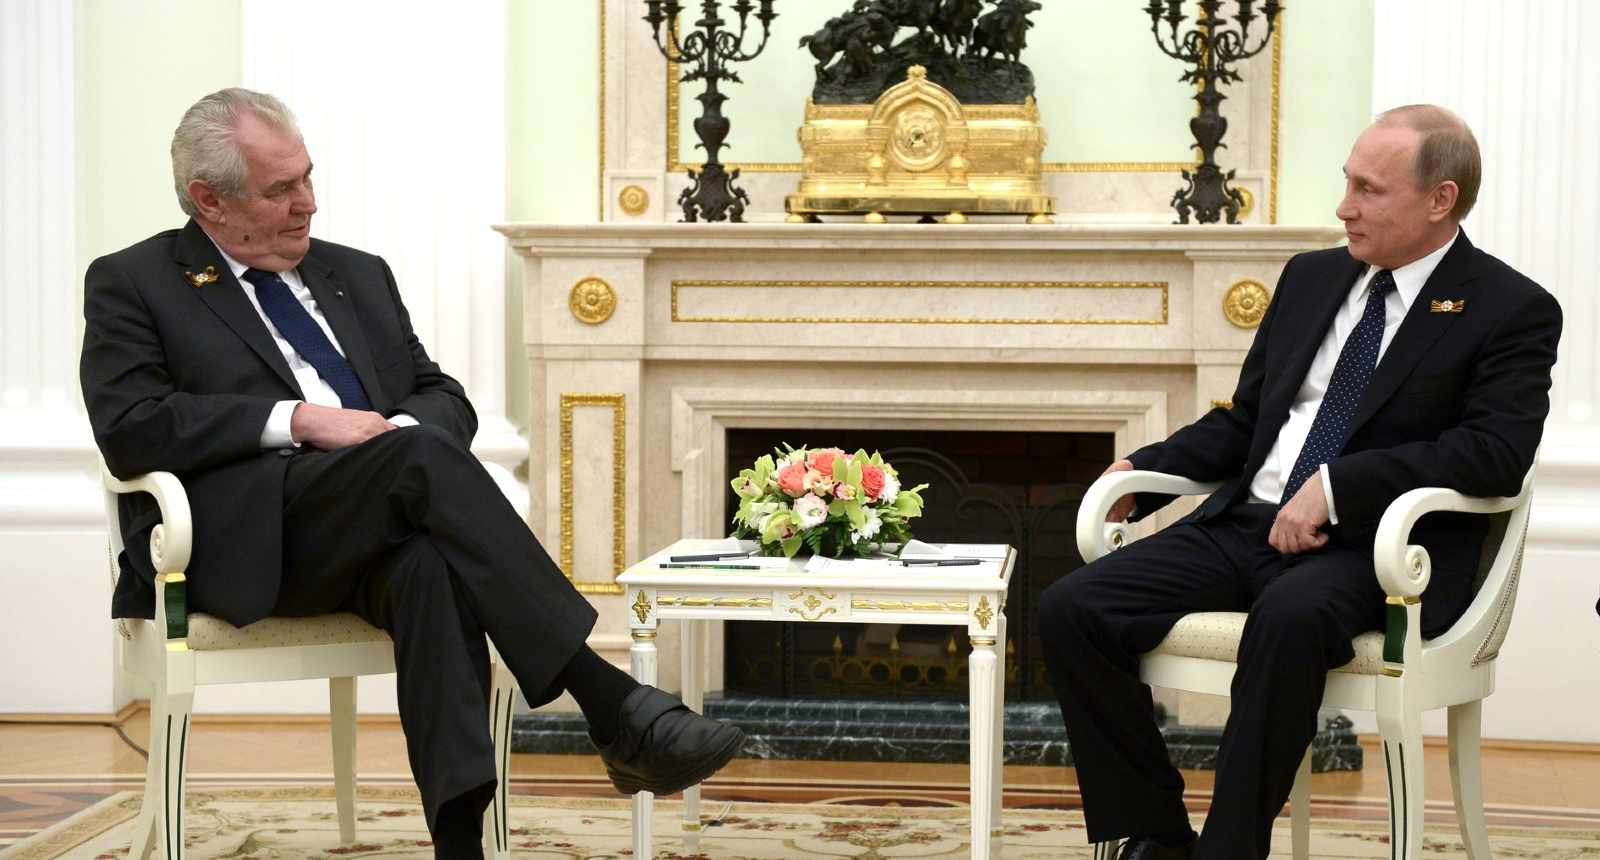 Photo: With President of the Czech Republic Milos Zeman. Credit: Kremlin